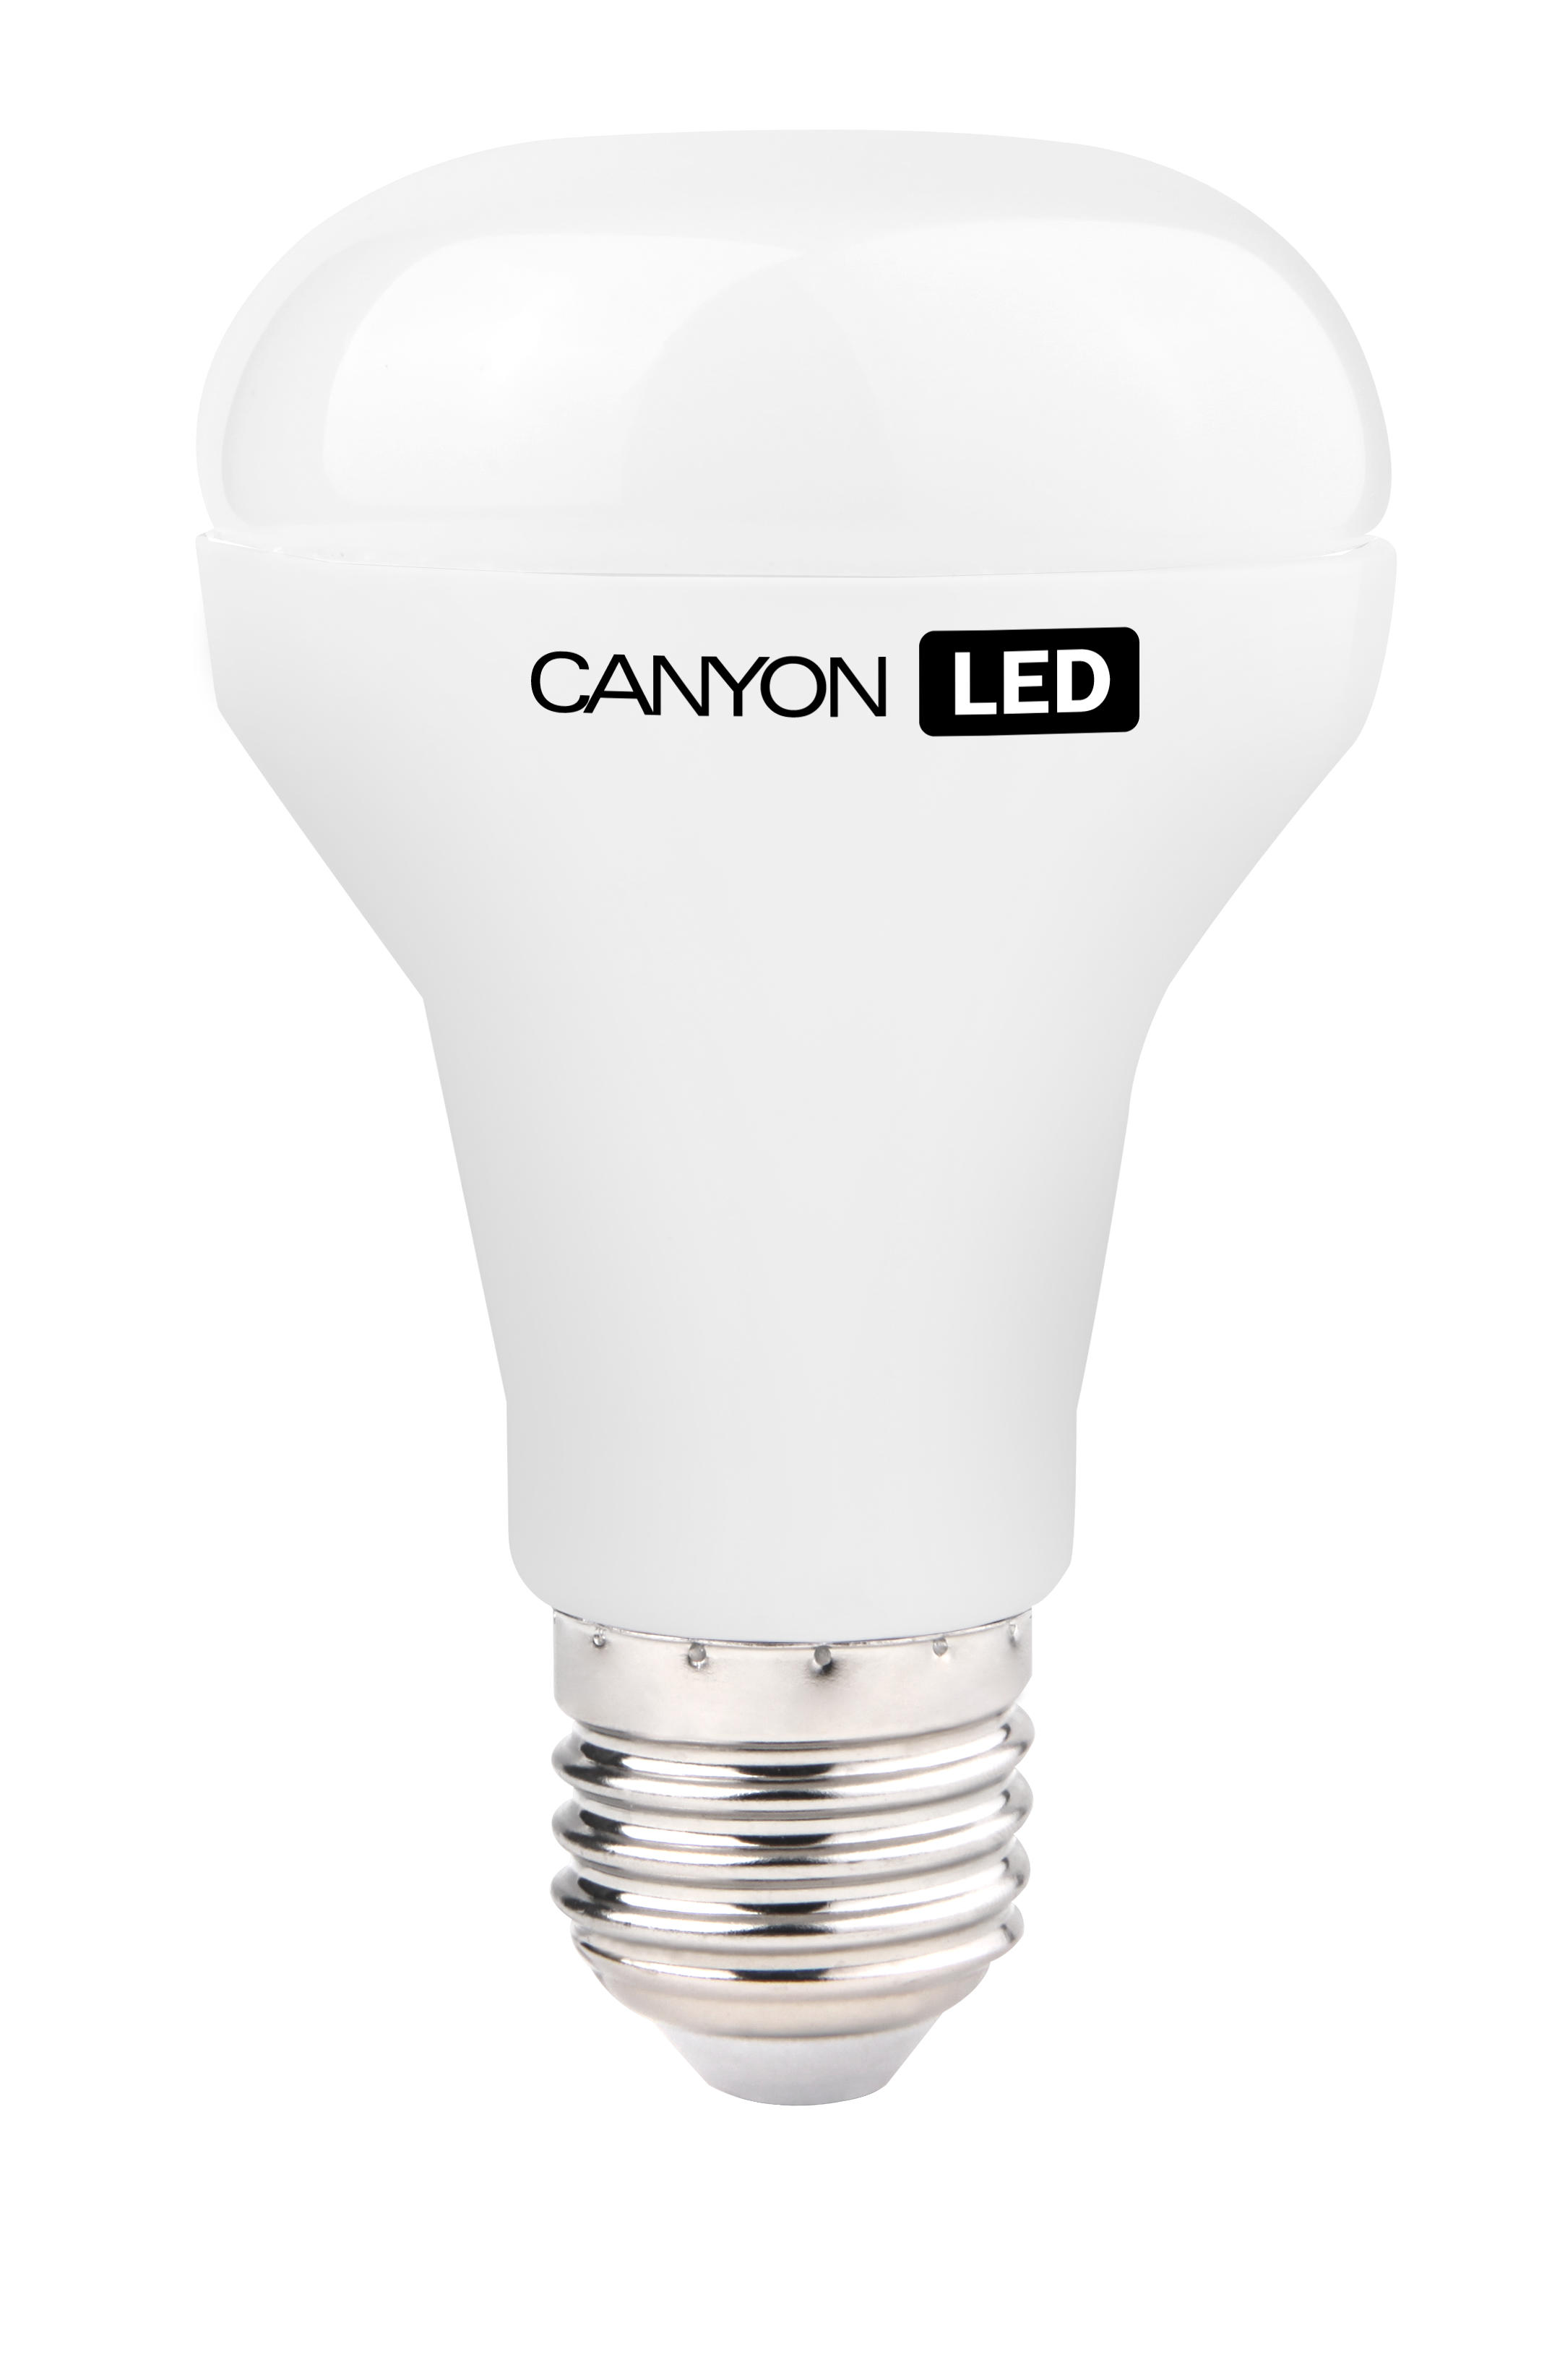 Canyon LED Lamp